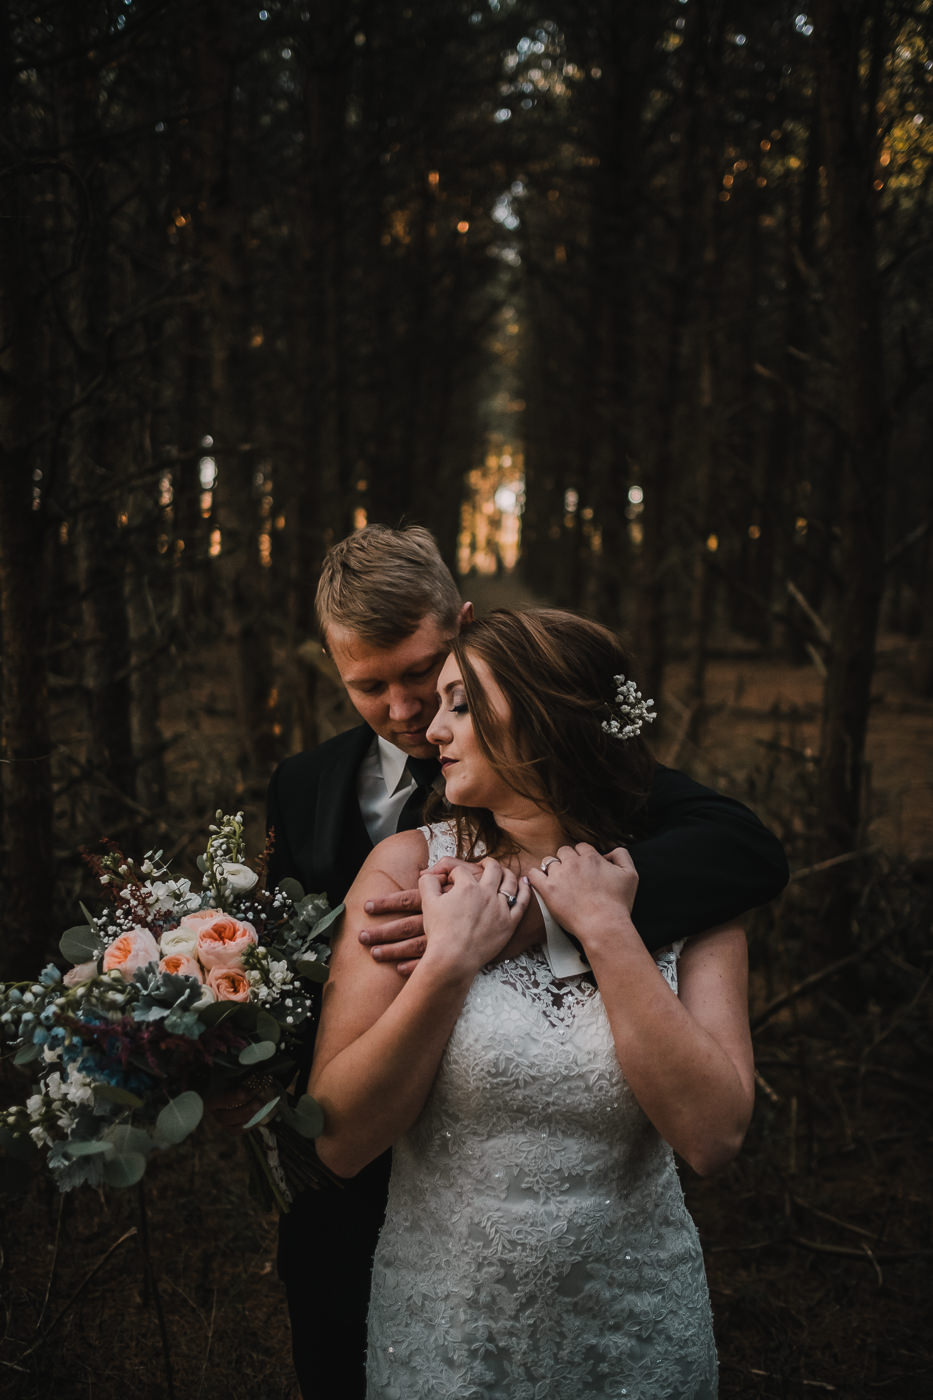 rogers.arkansas.weddingphotos.©2018mileswittboyer-27.jpg